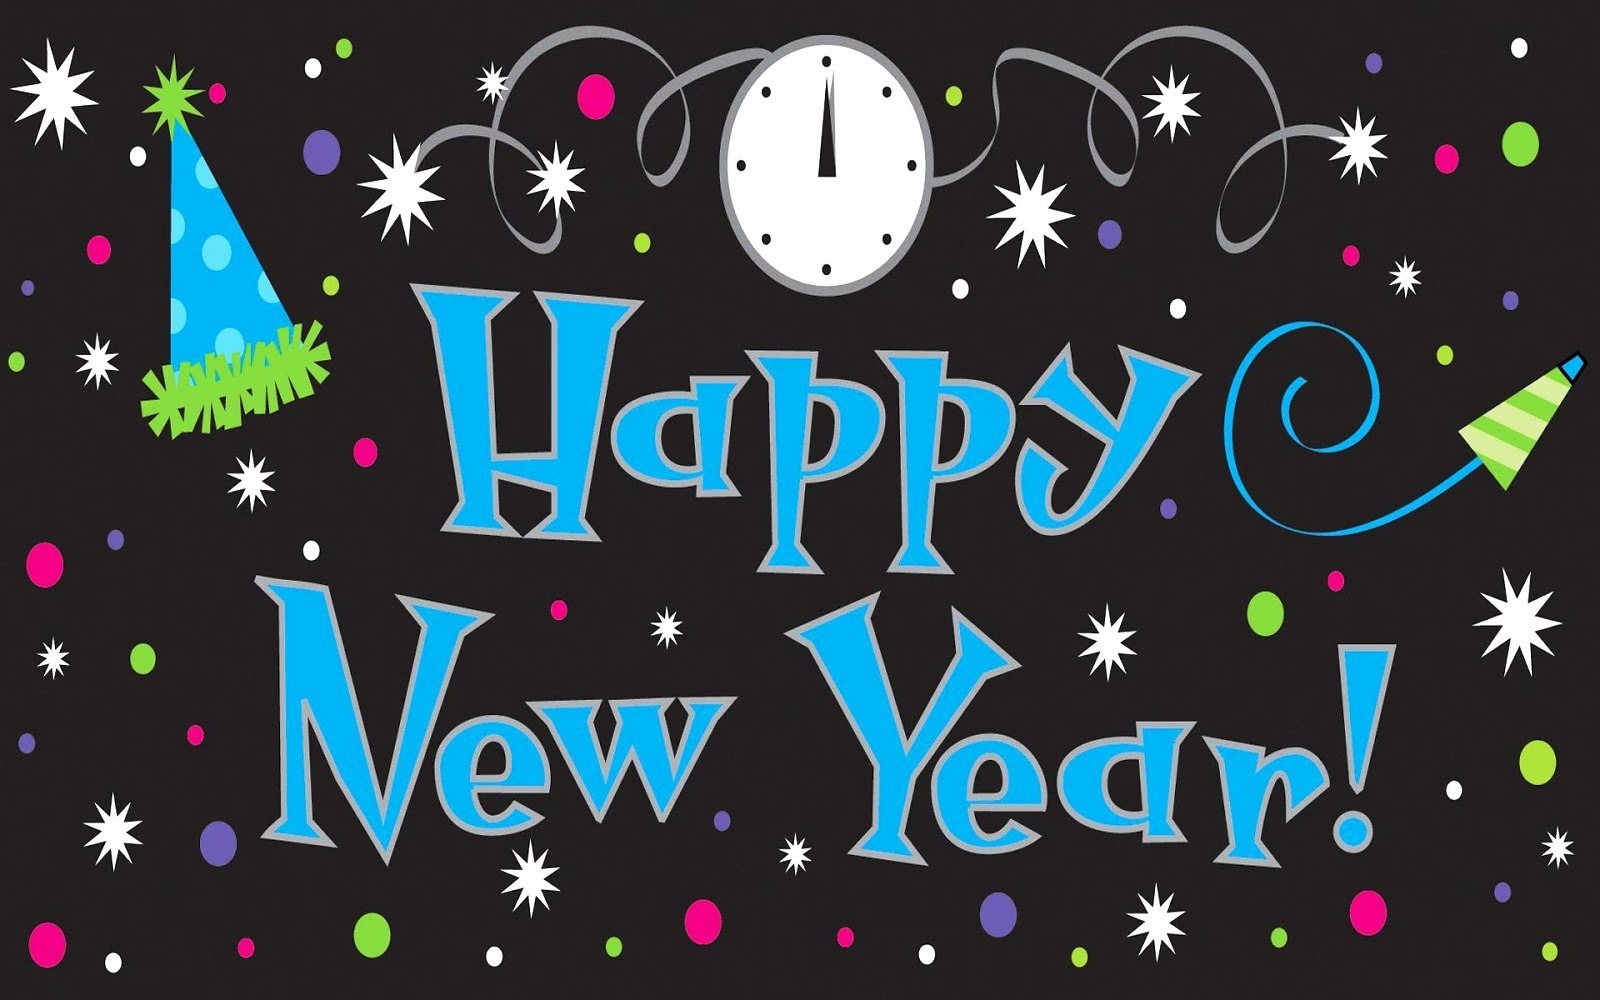 [Top 100* ] Download Happy New Year Images 2018 in Full HD - Download Happy N...